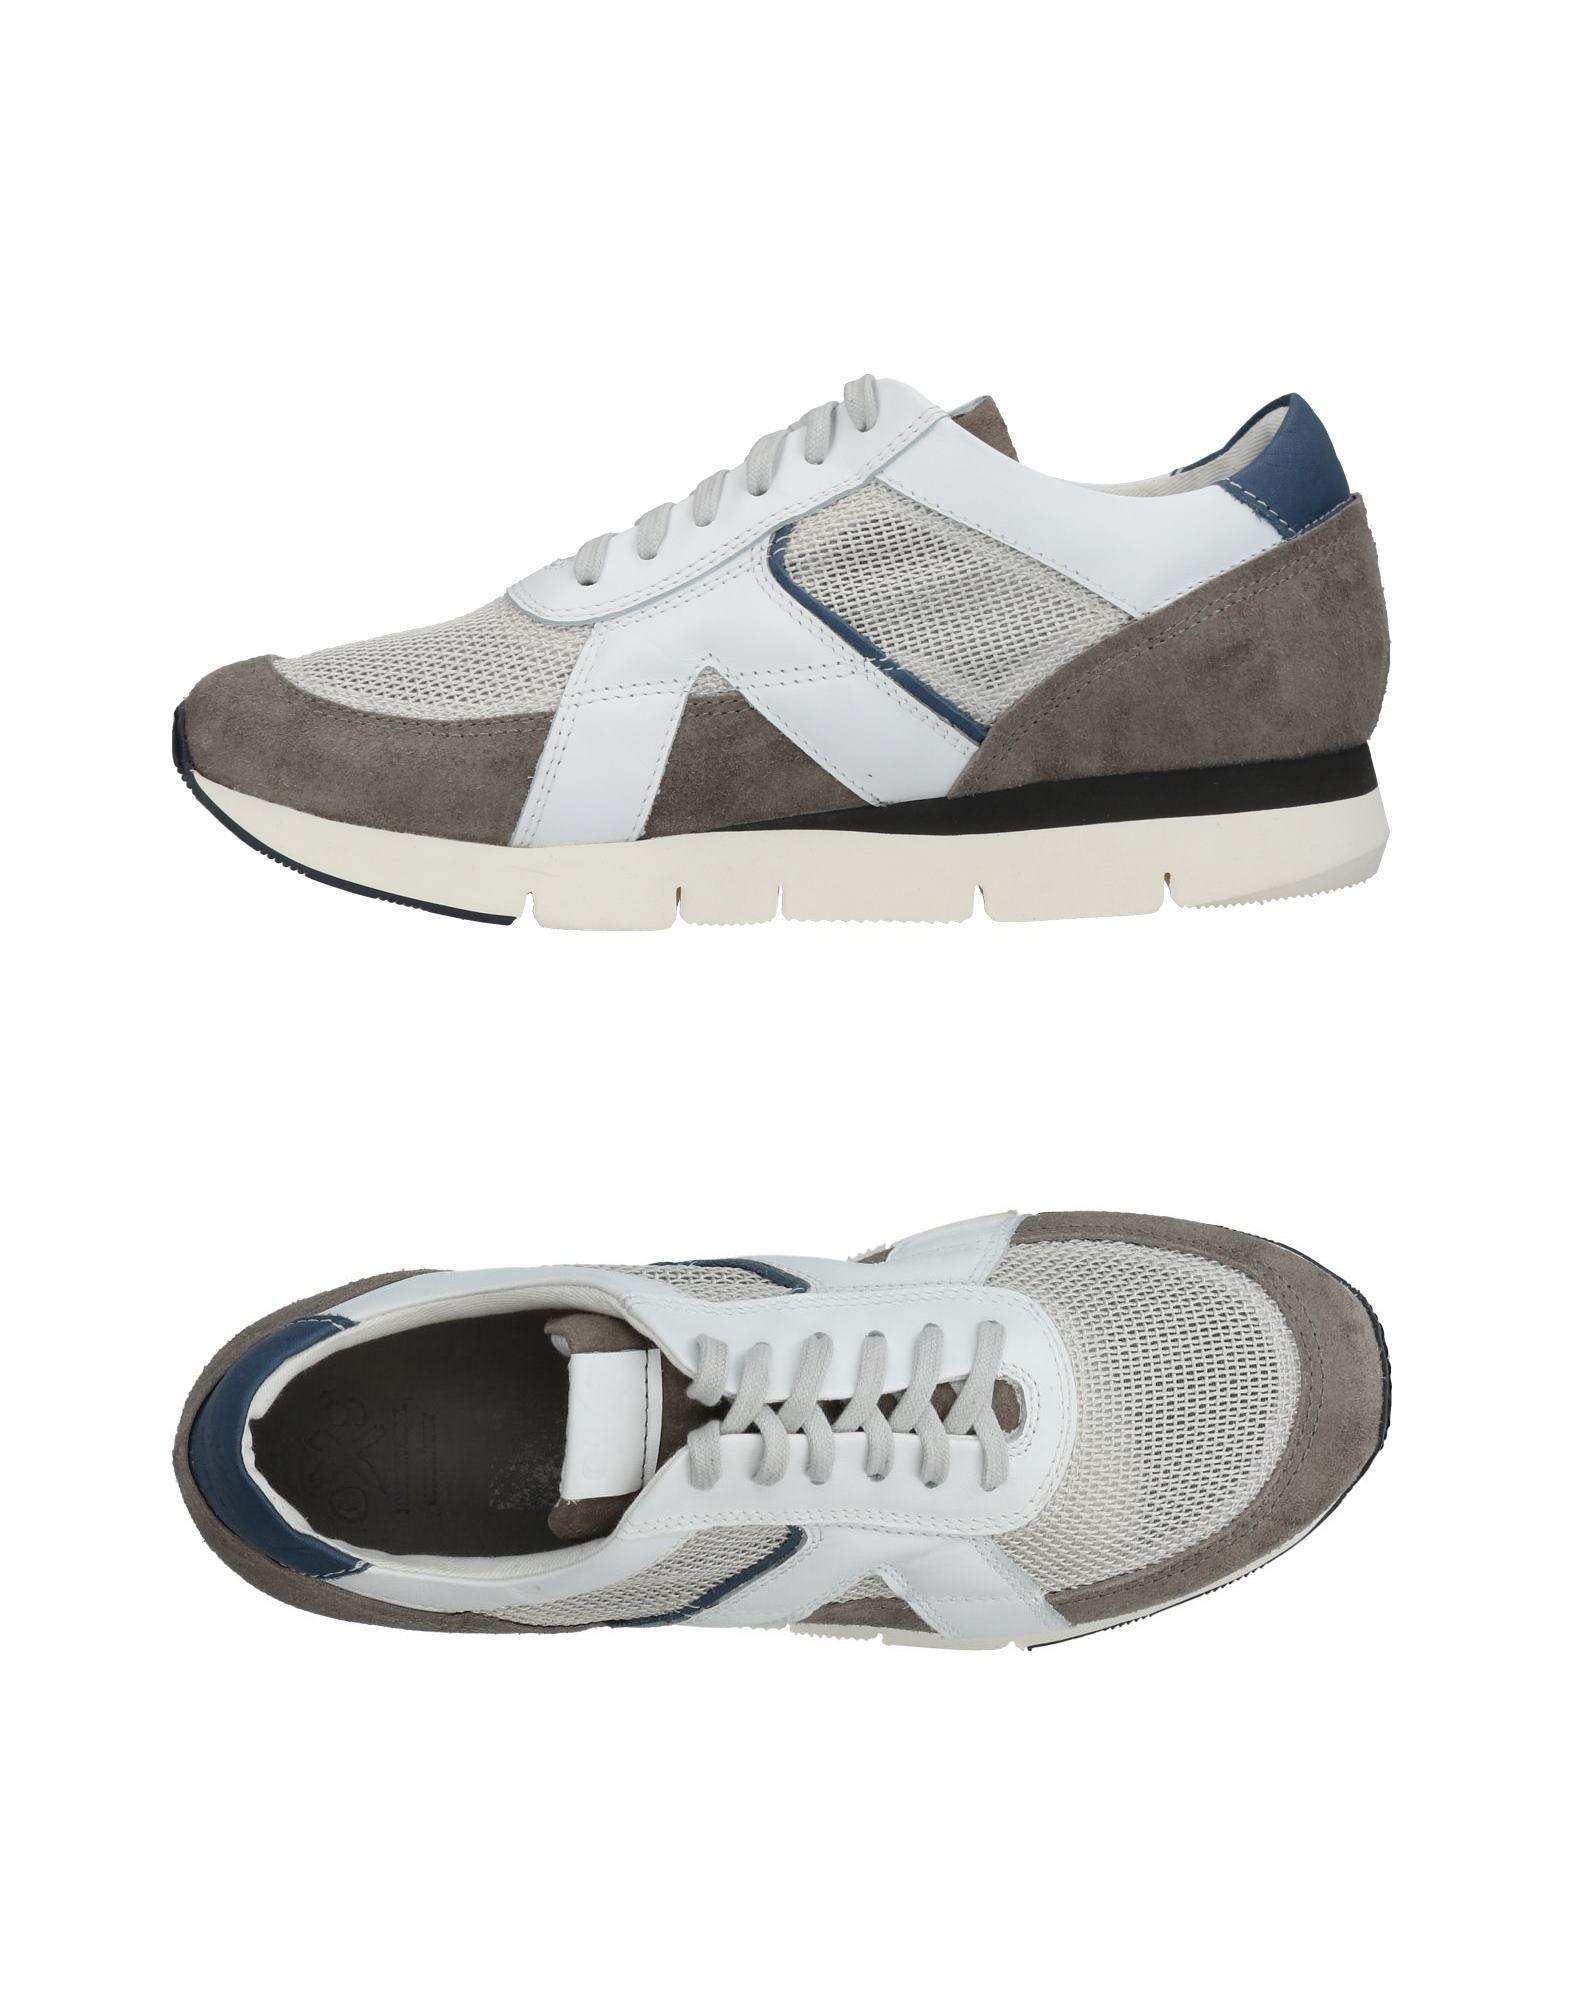 Sneakers O.X.S. Homme - Sneakers O.X.S.  Gris Super rabais